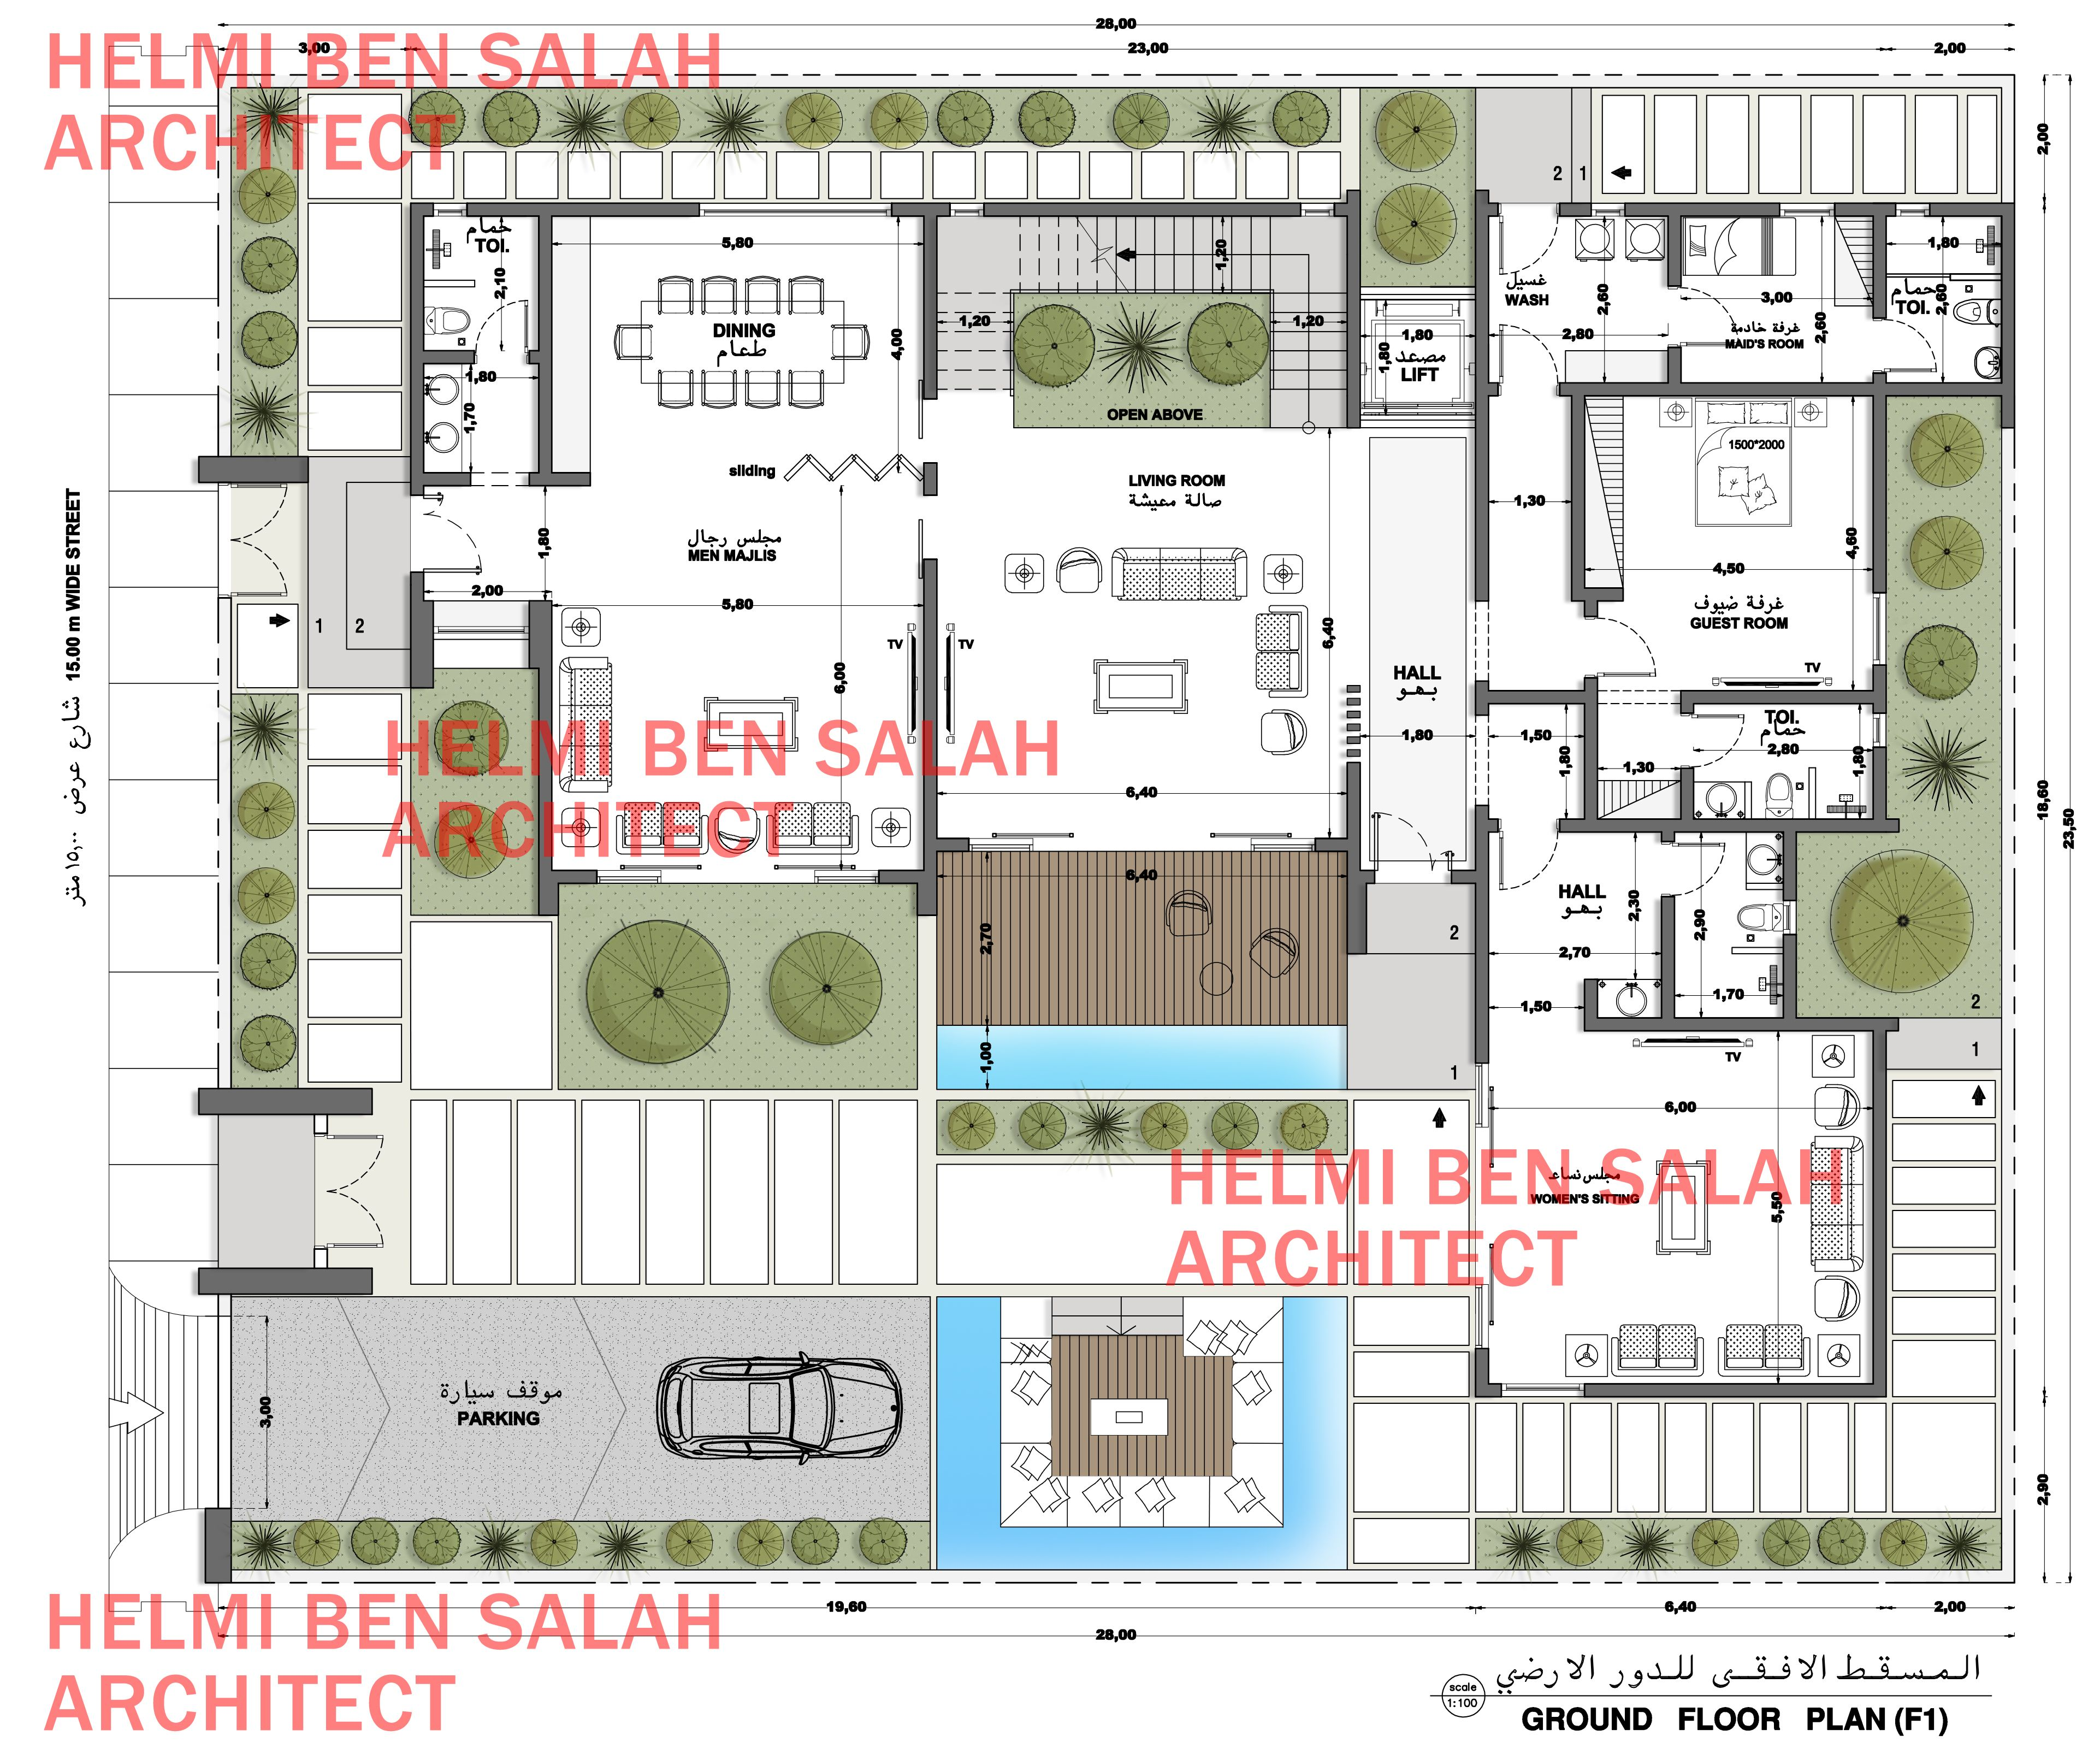 Helmi Ben Salah Architect Architecture Plan How To Plan Architect